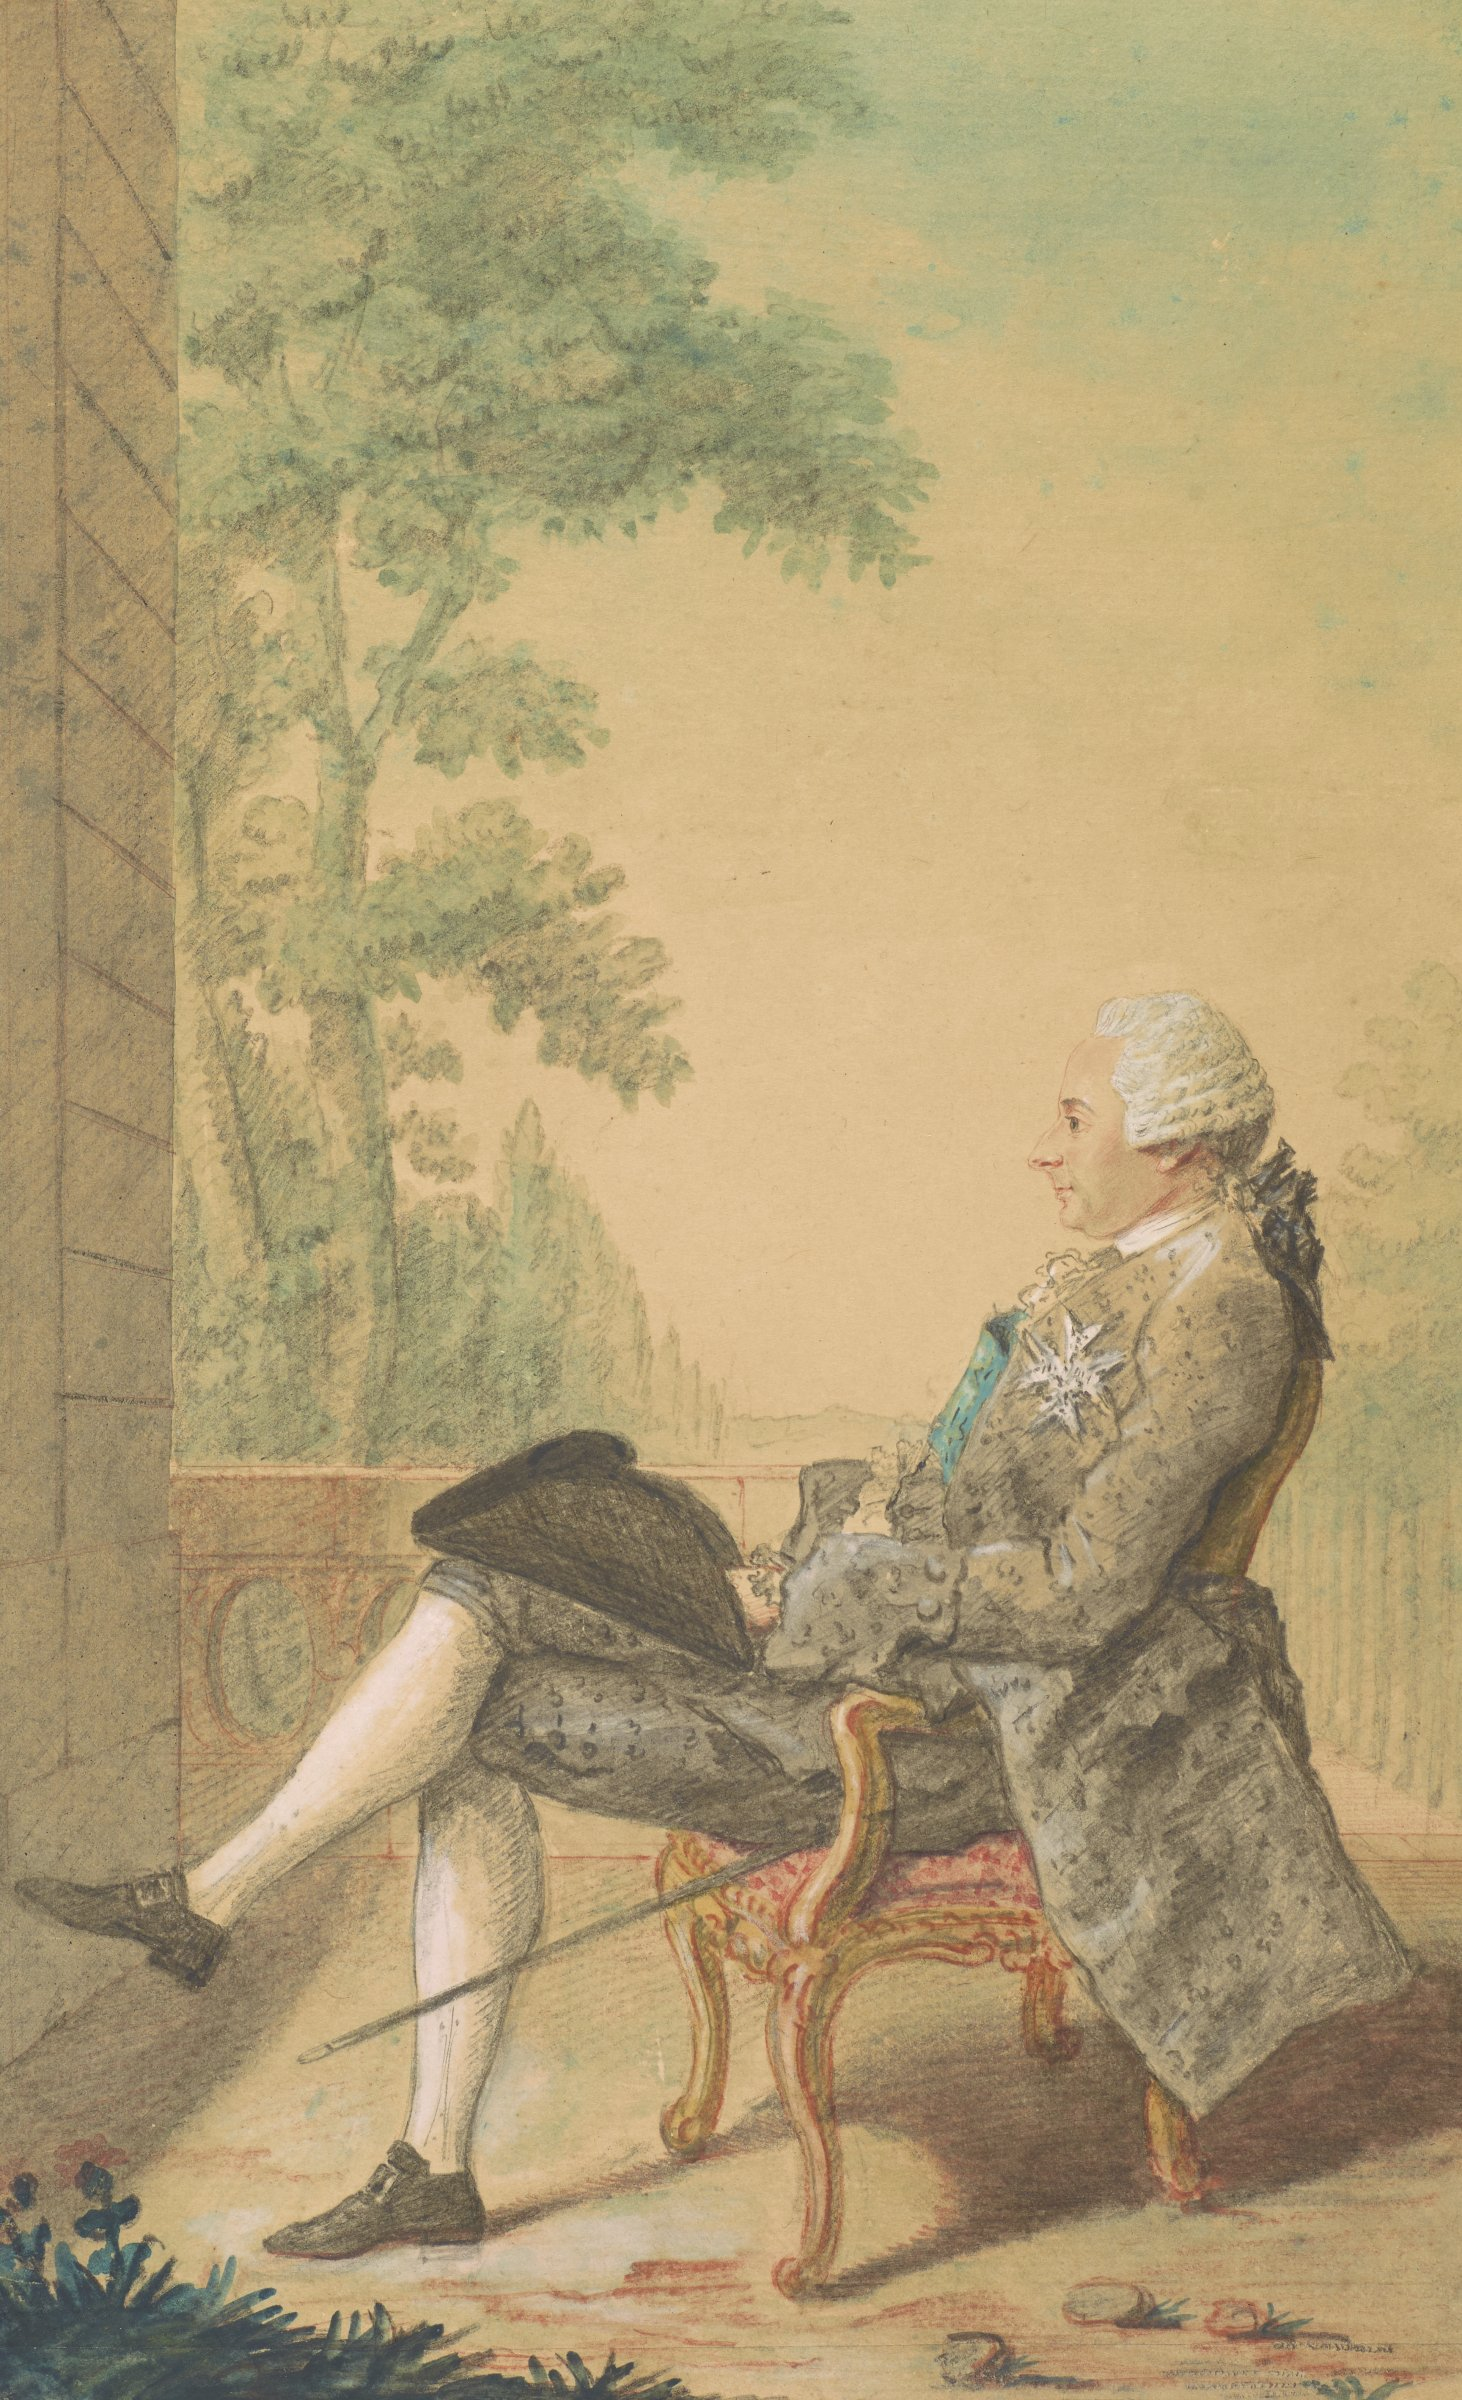 Seated man with right leg crossed over left, facing left on a balcony. He wears a white star-shaped medal on his left breast. A black hat rests in his lap.